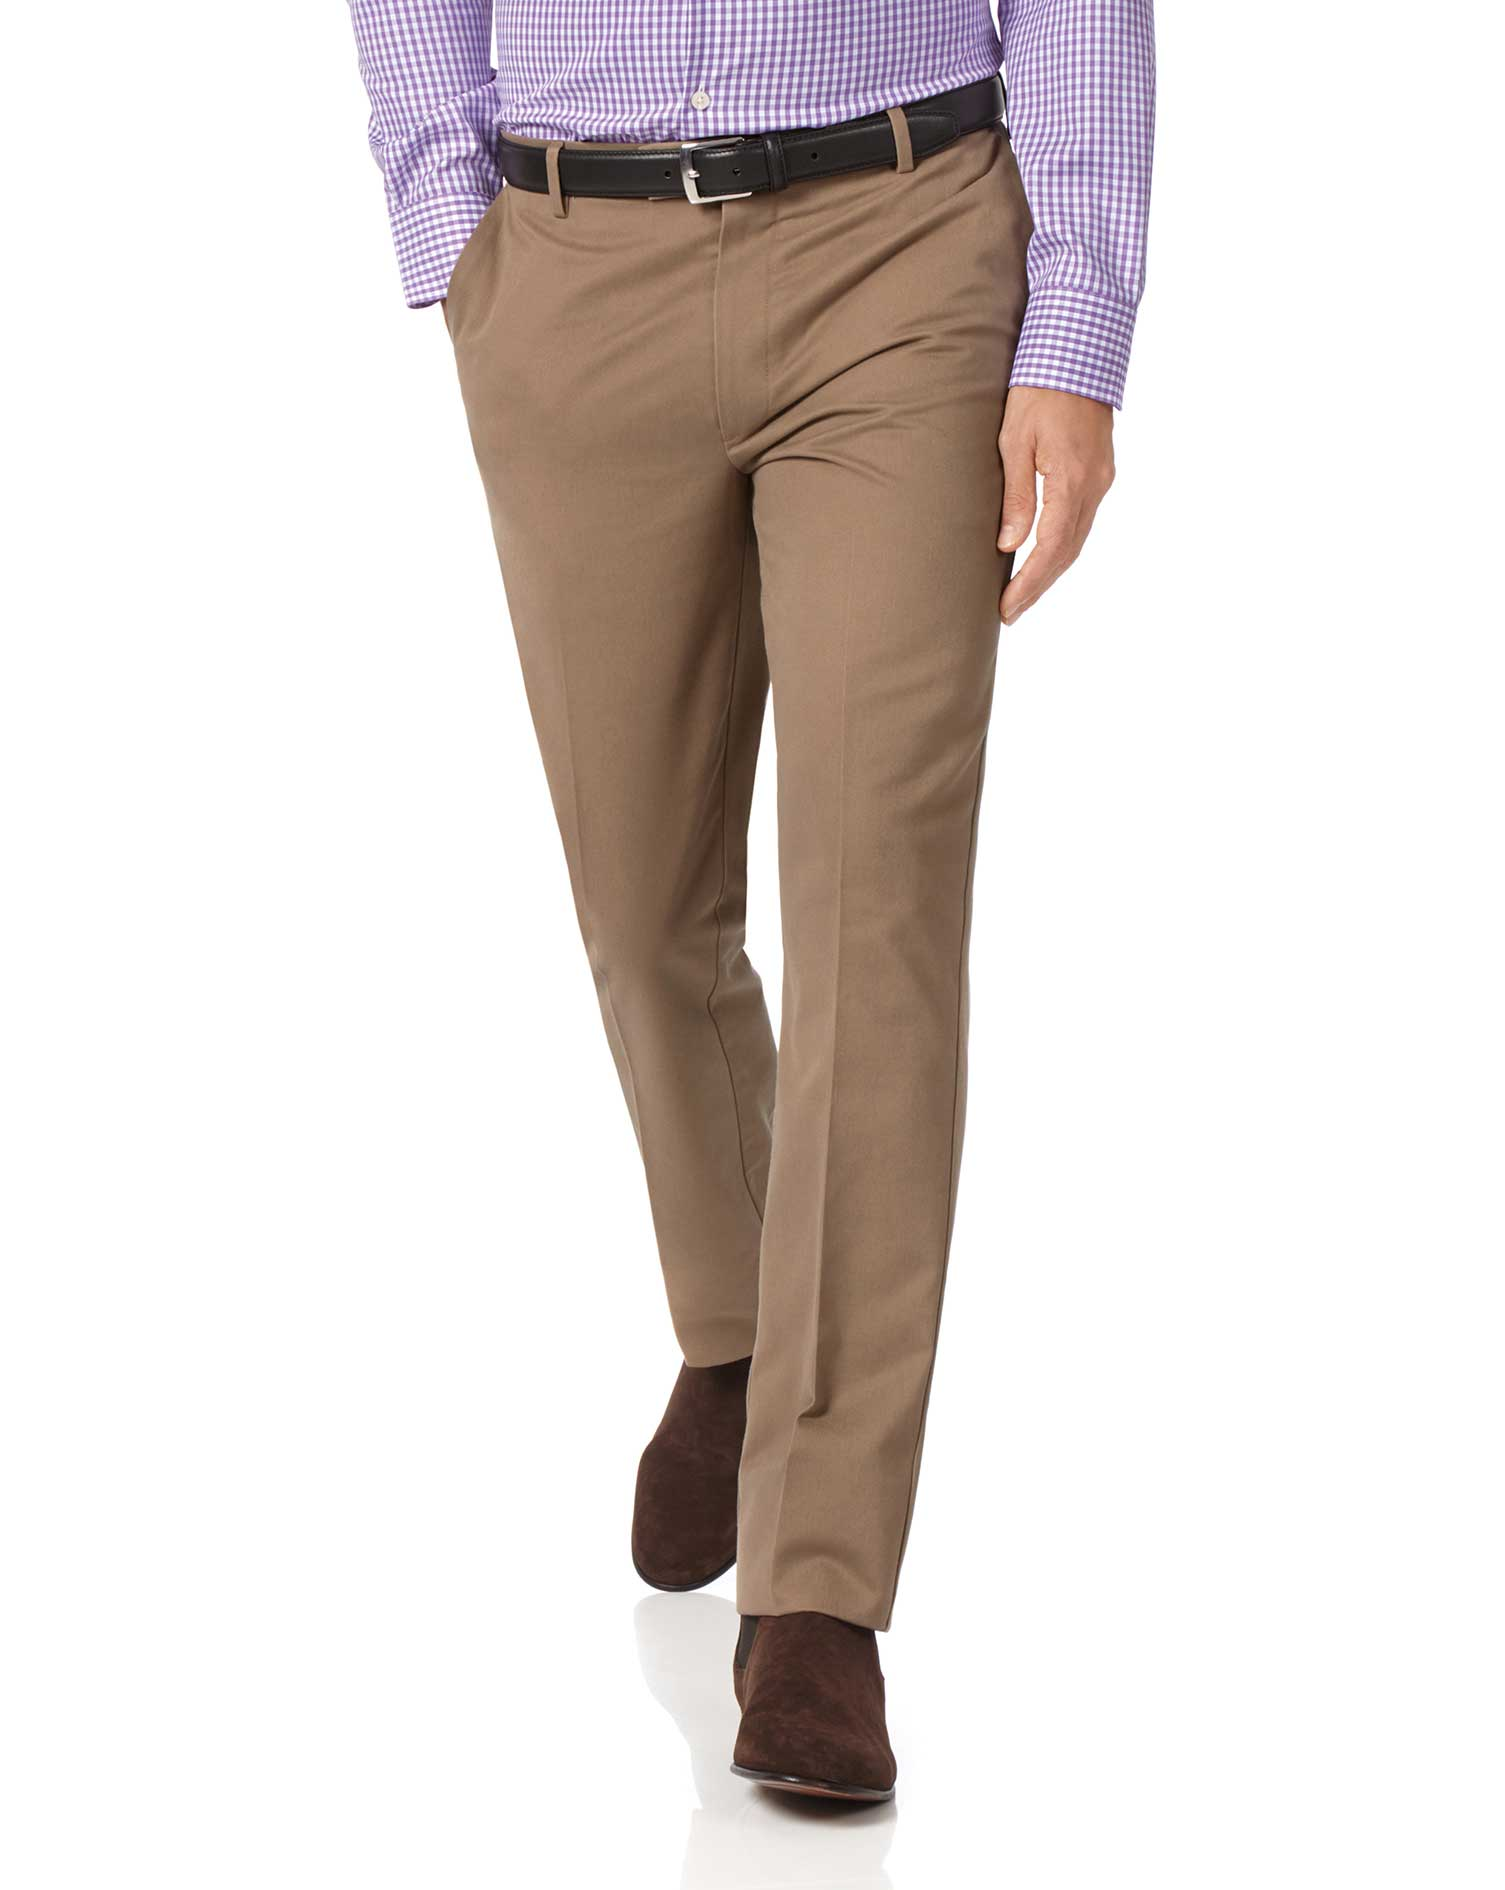 tan extra slim fit flat front non-iron cotton chino pants size w34 l38 by charles tyrwhitt